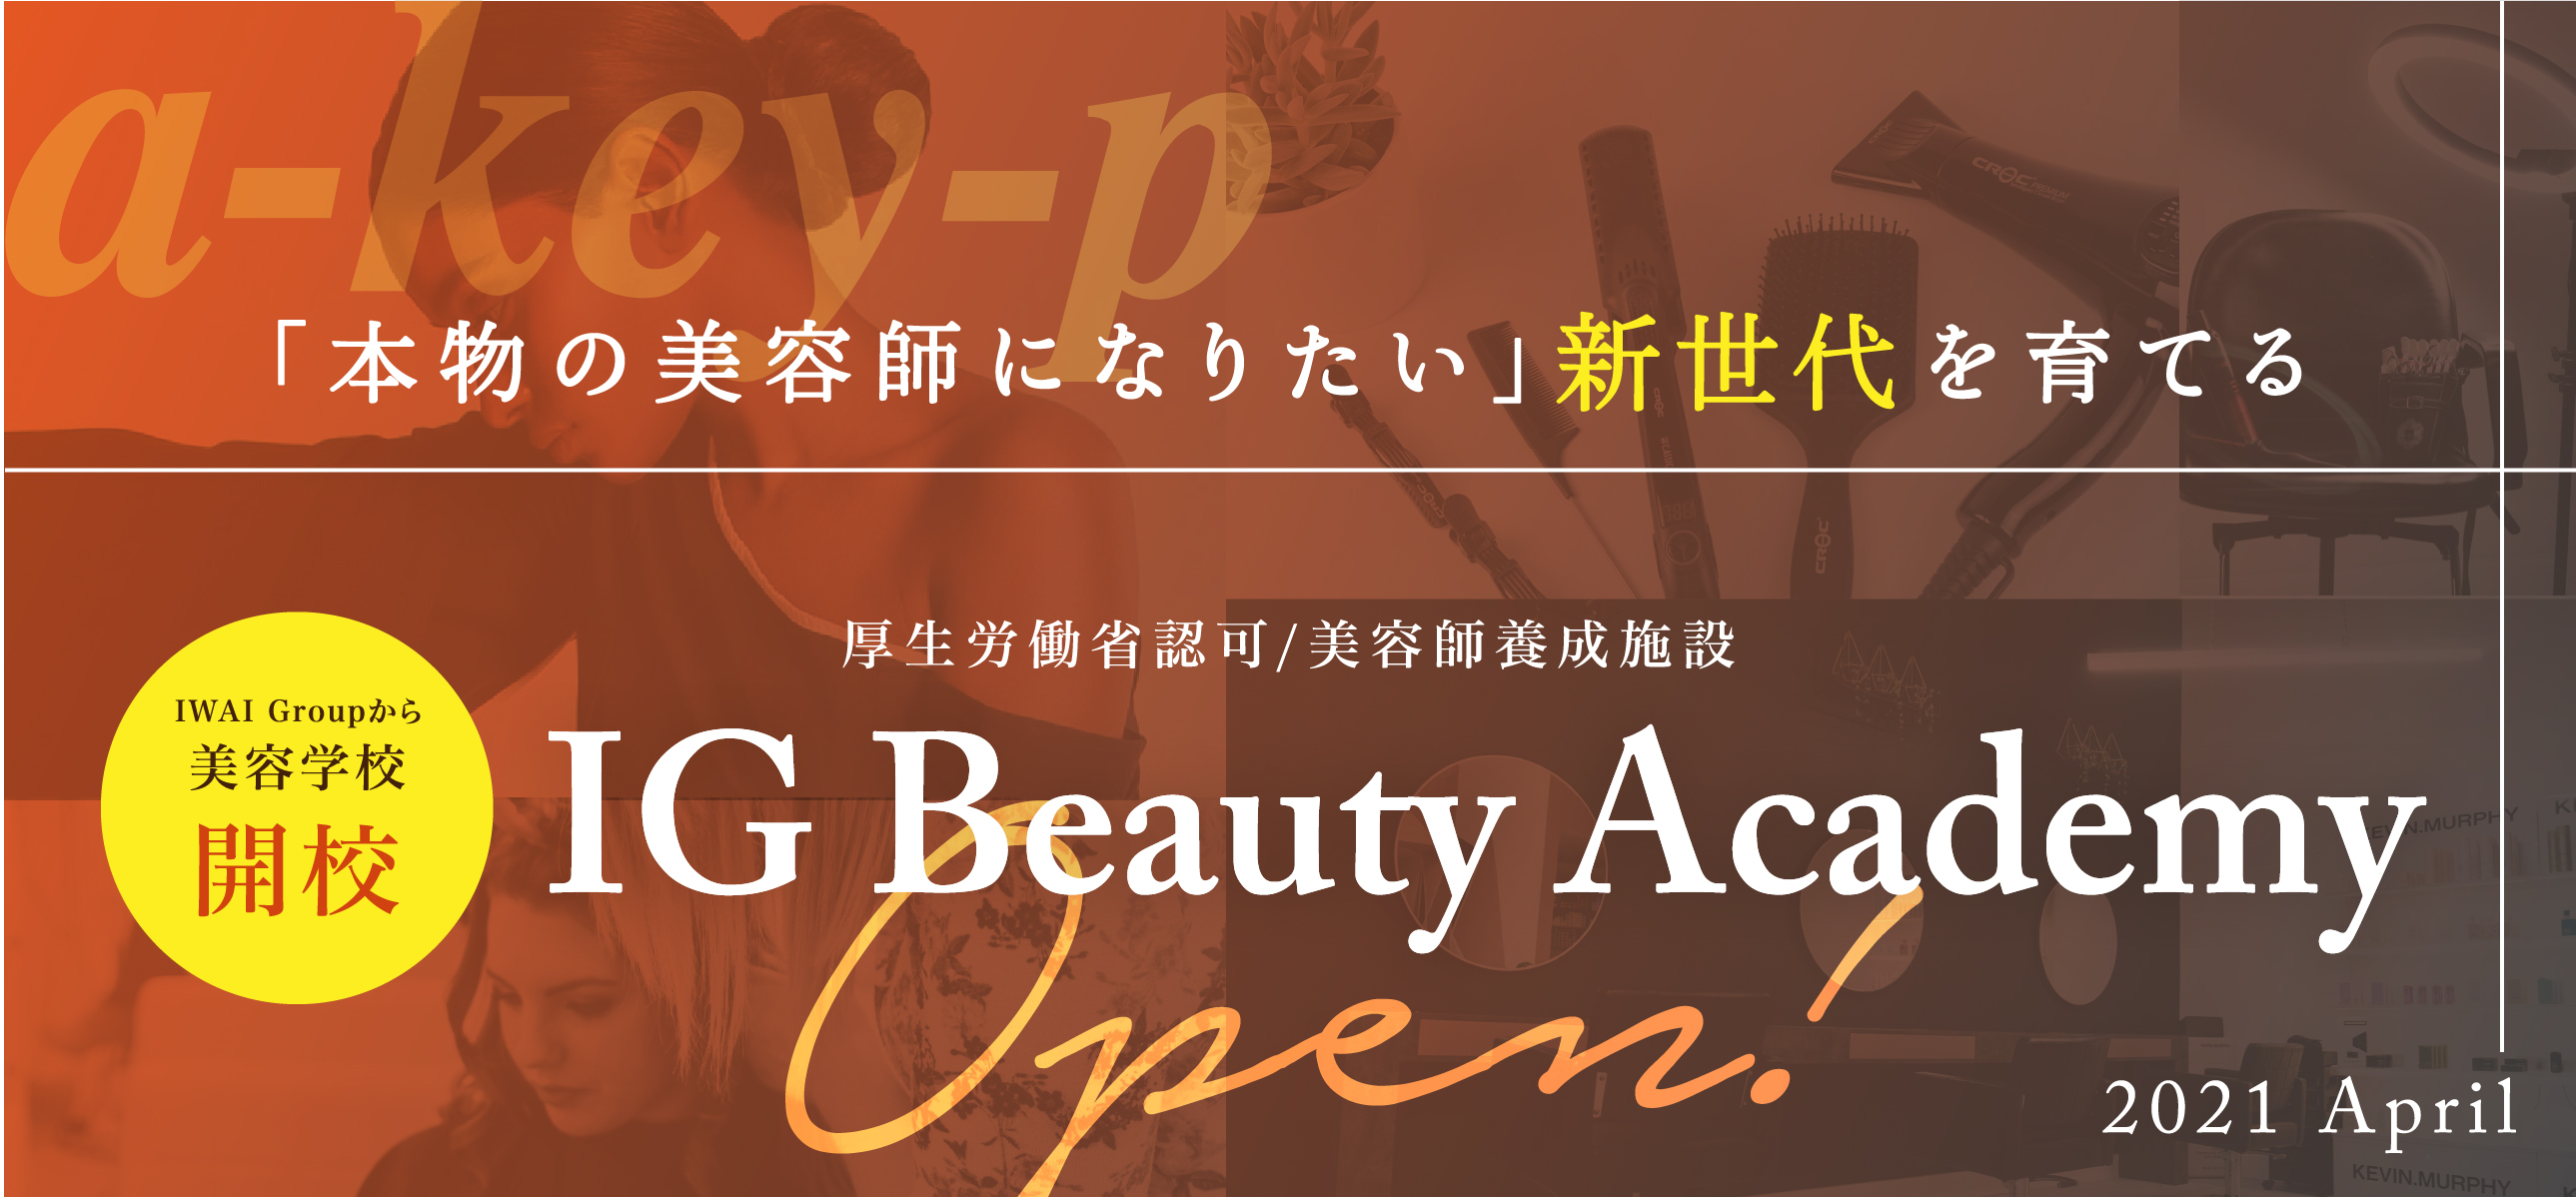 IG Beauty Academy